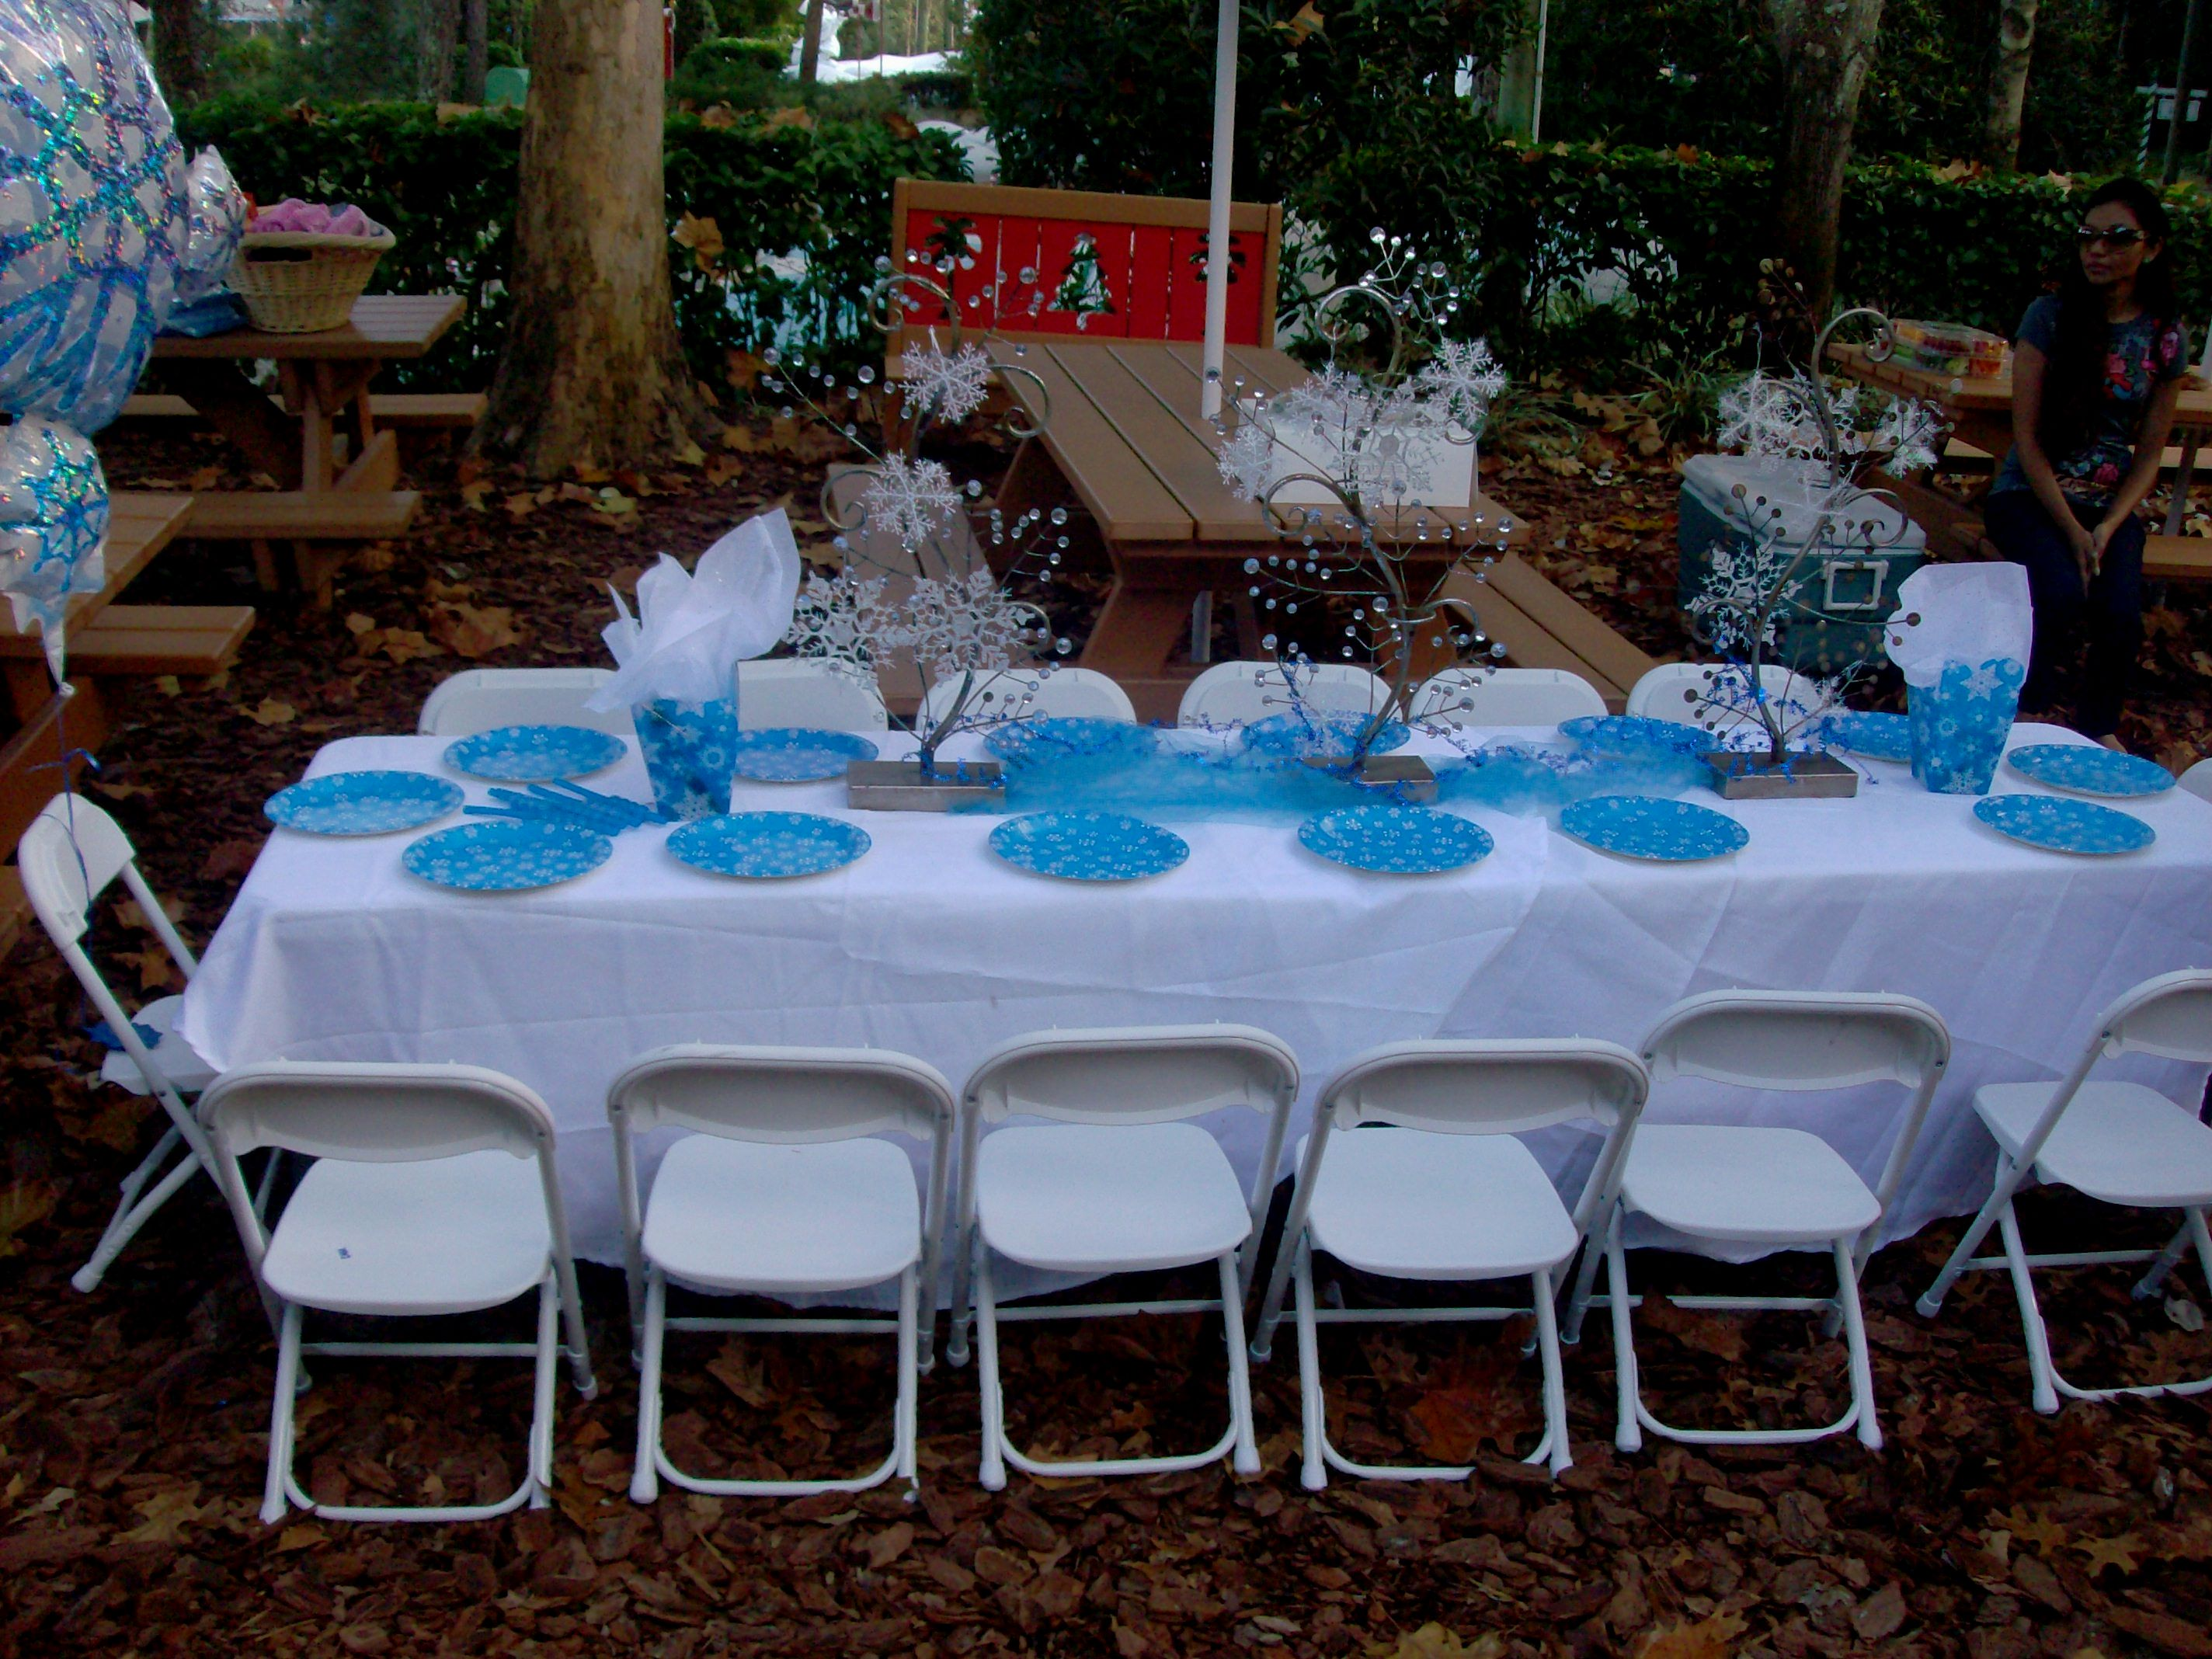 Winter Tablescape and Centerpieces Decorations Ideas-interior-design-creative-winter-themed-table-decorations